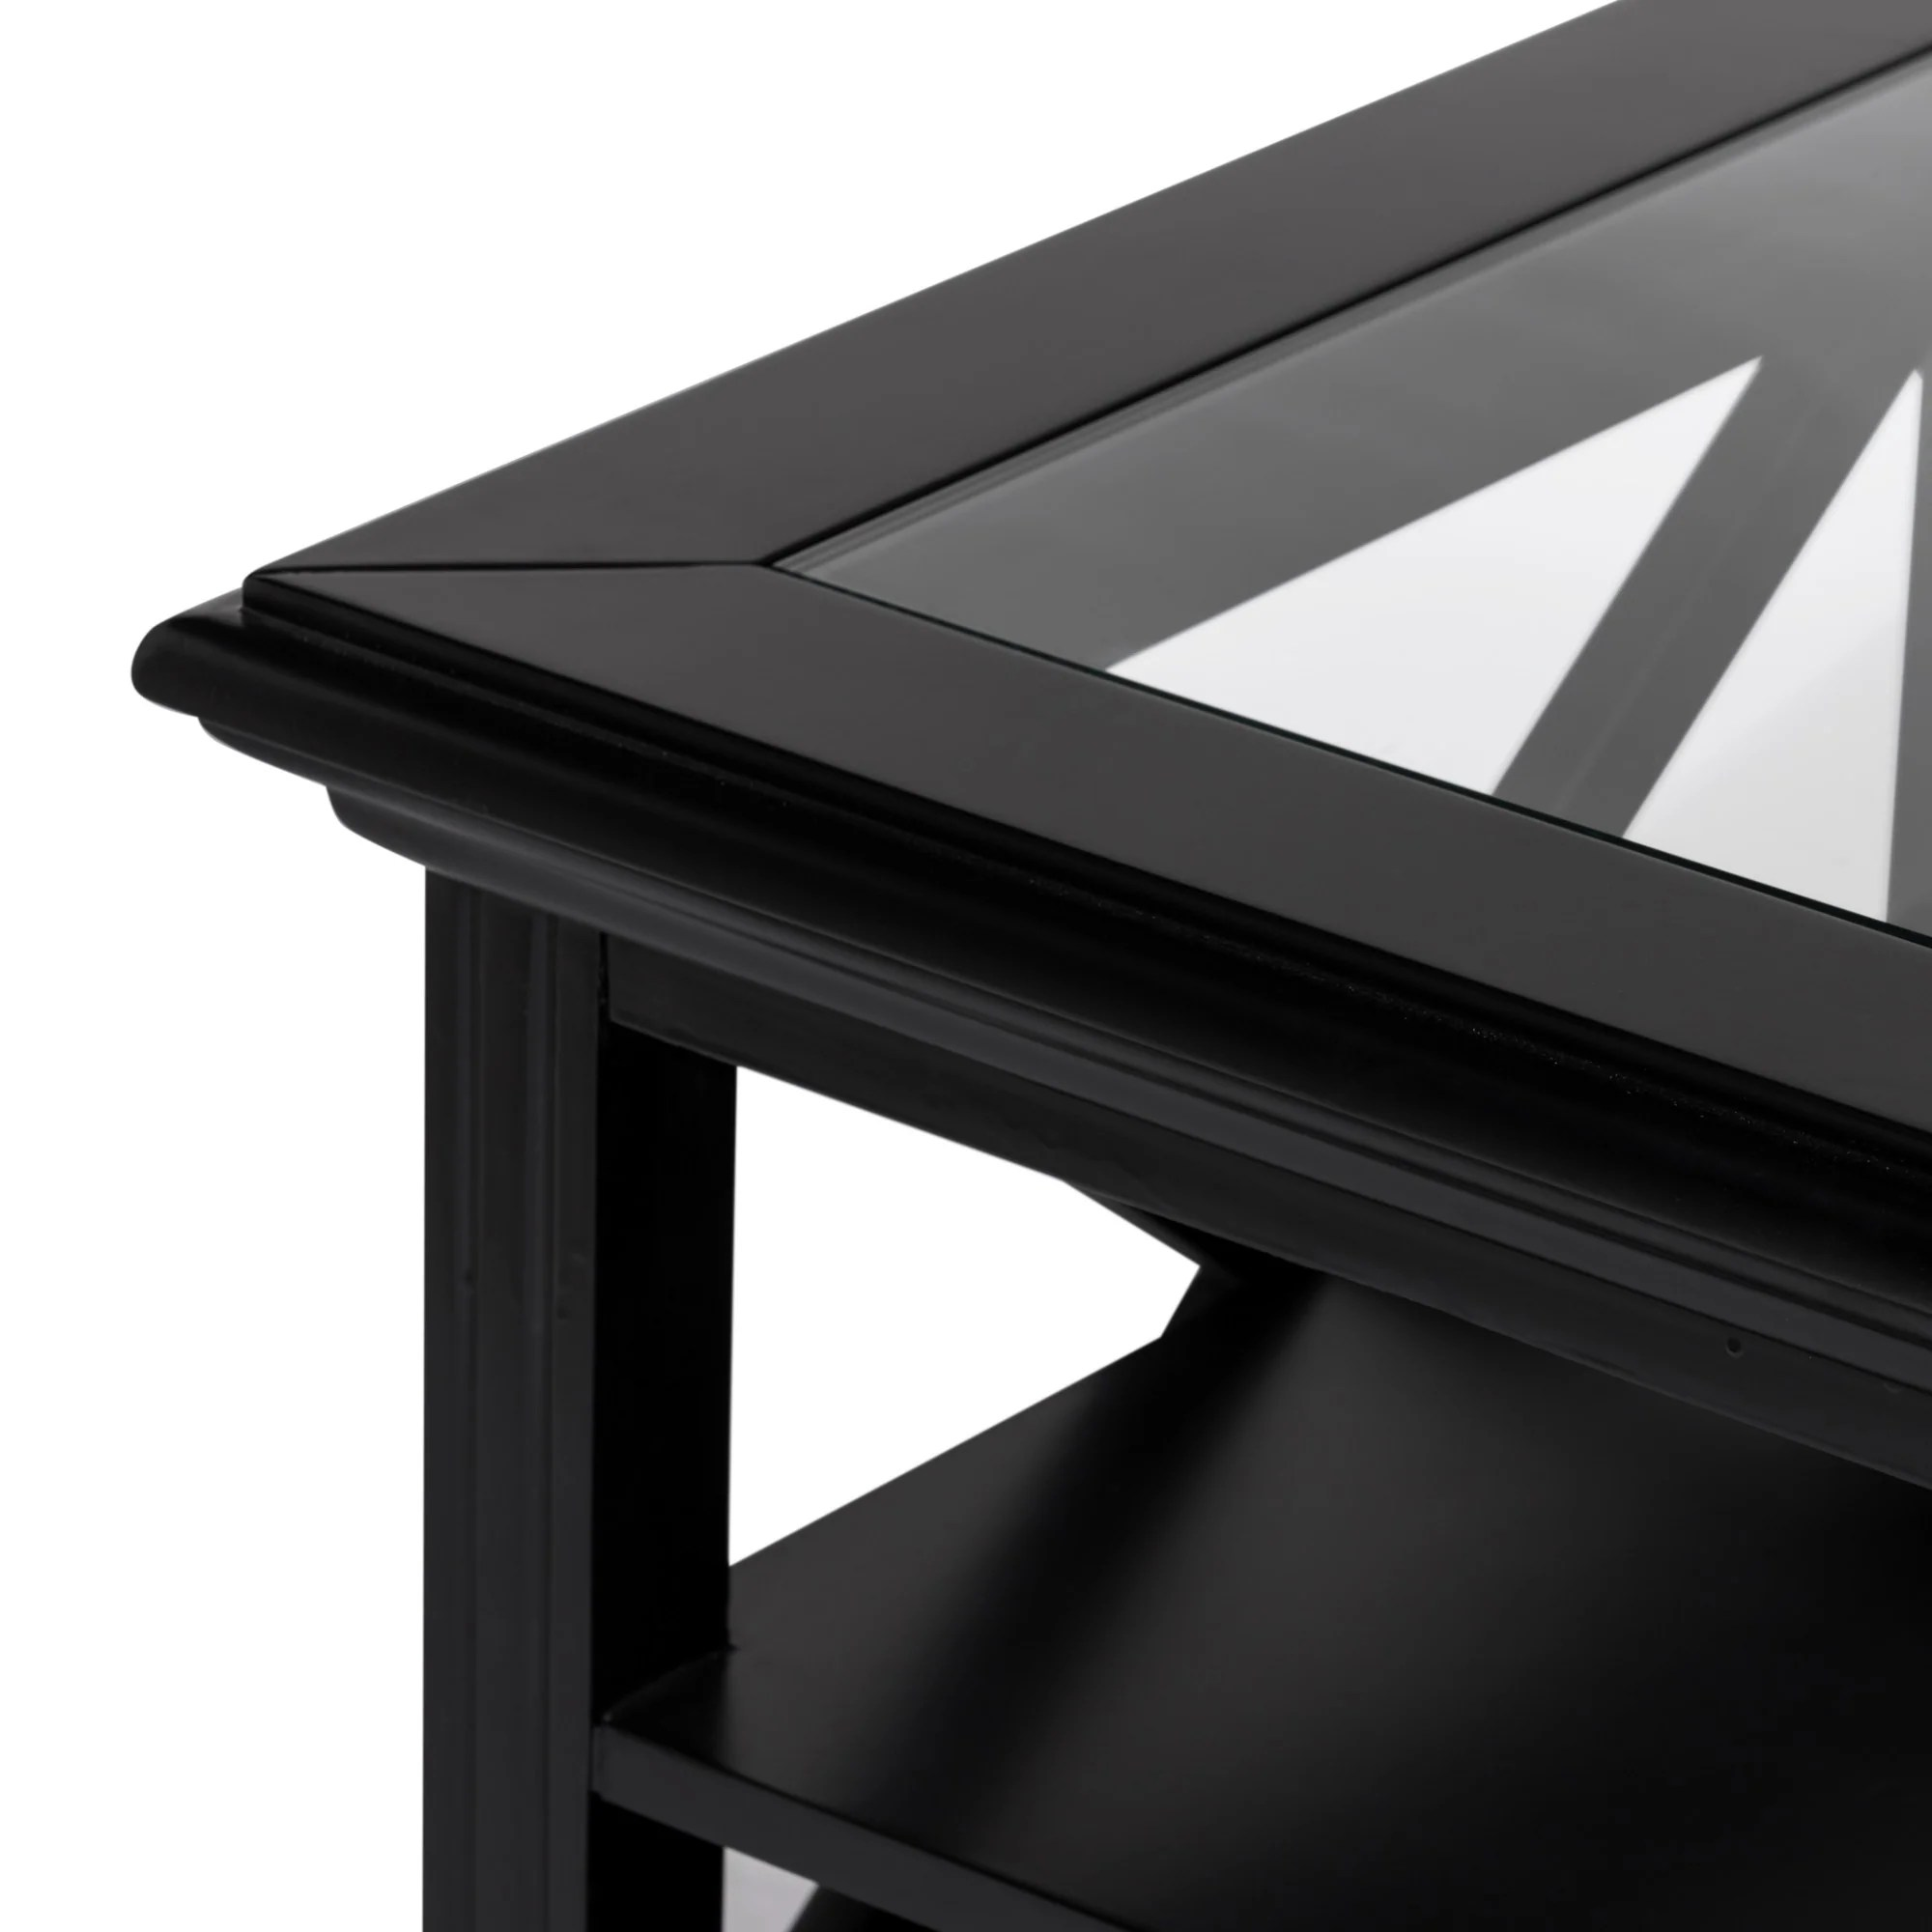 rhode island square glass coffee table black